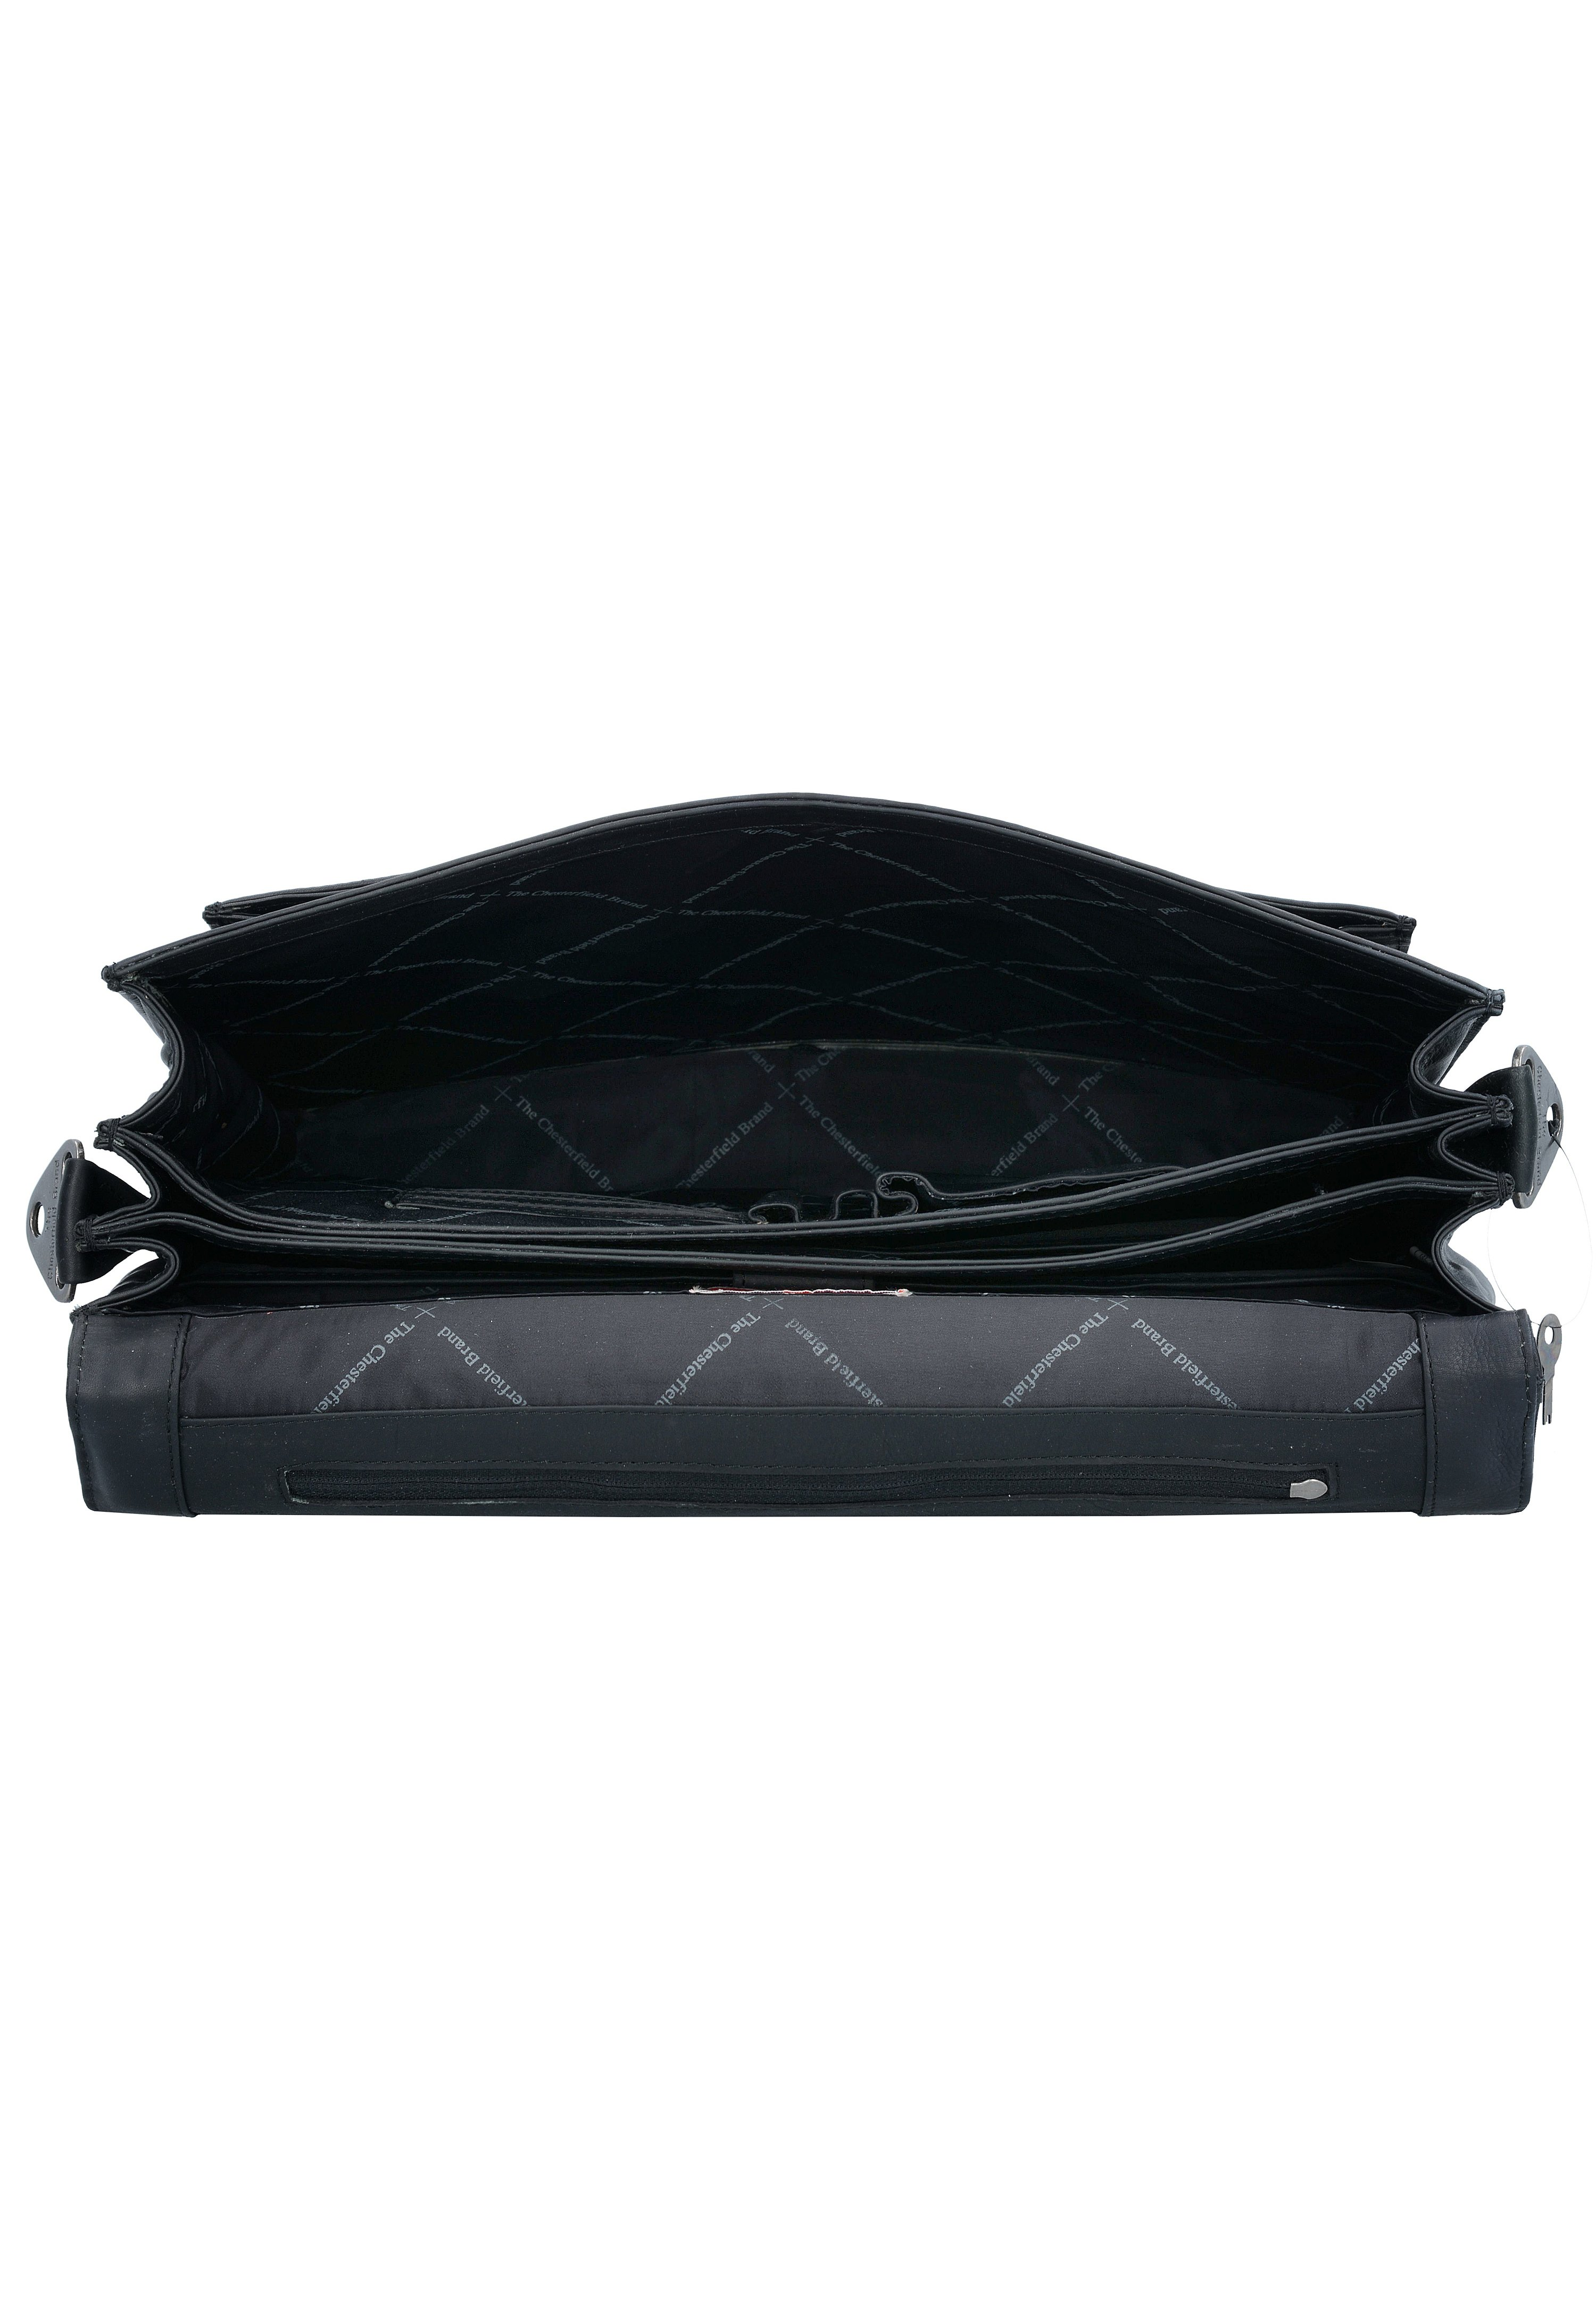 The Chesterfield Brand Aktentasche - black/schwarz - Herrentaschen 2t2hg